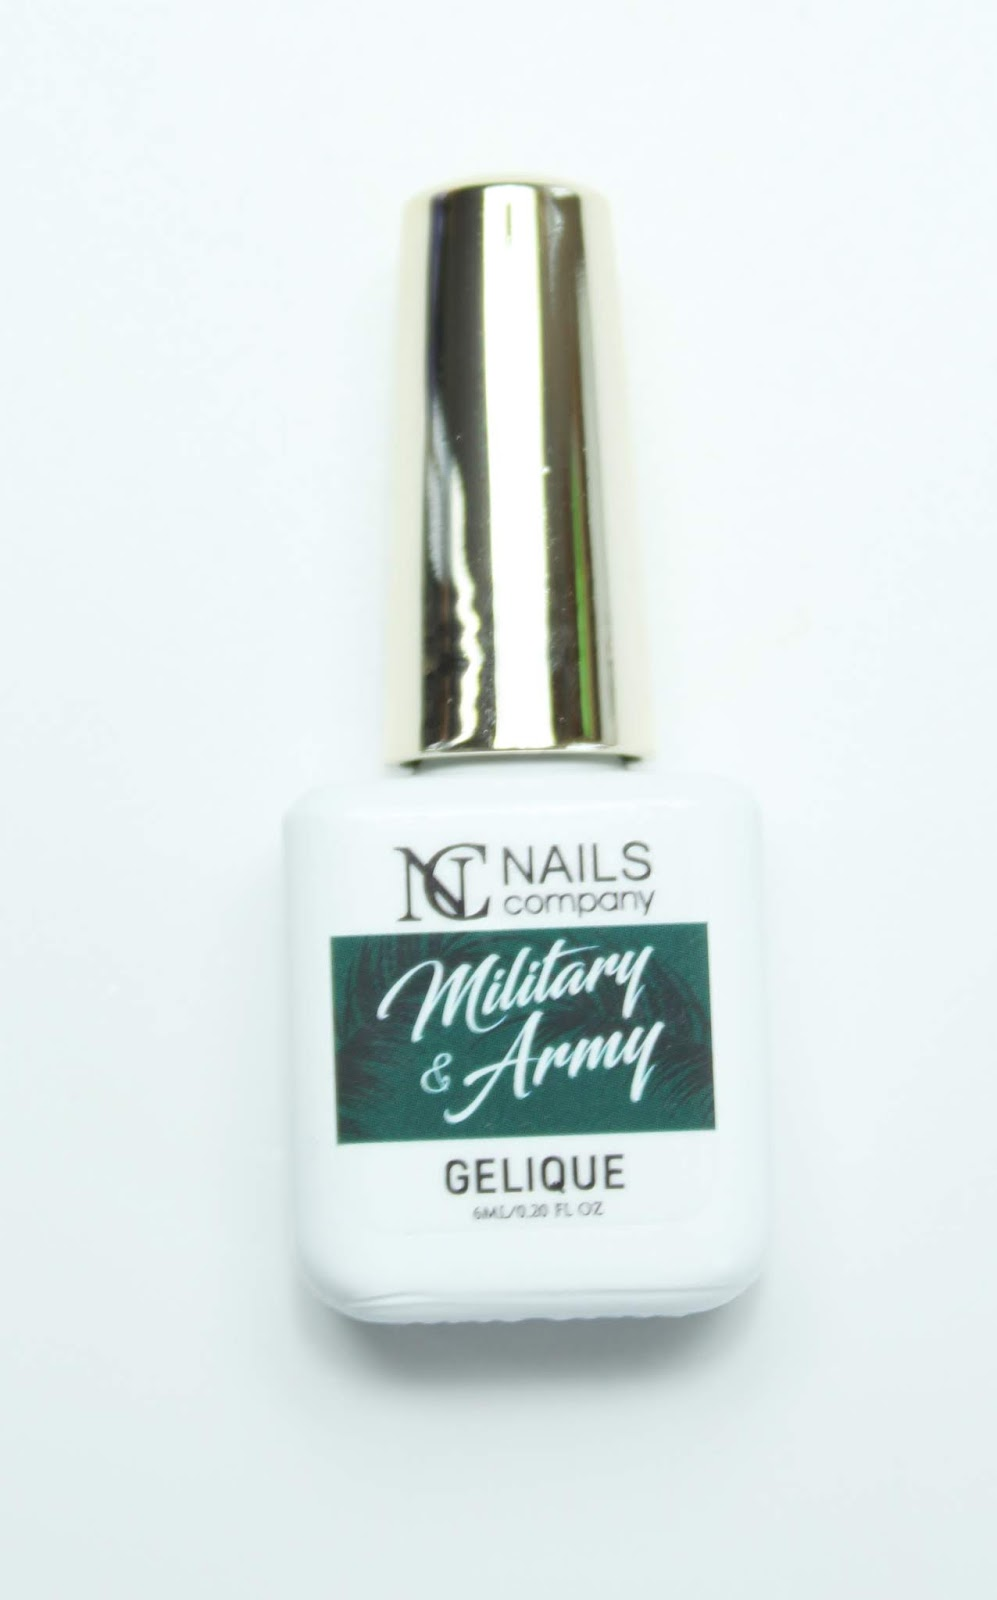 NC Nails Company Military & Army